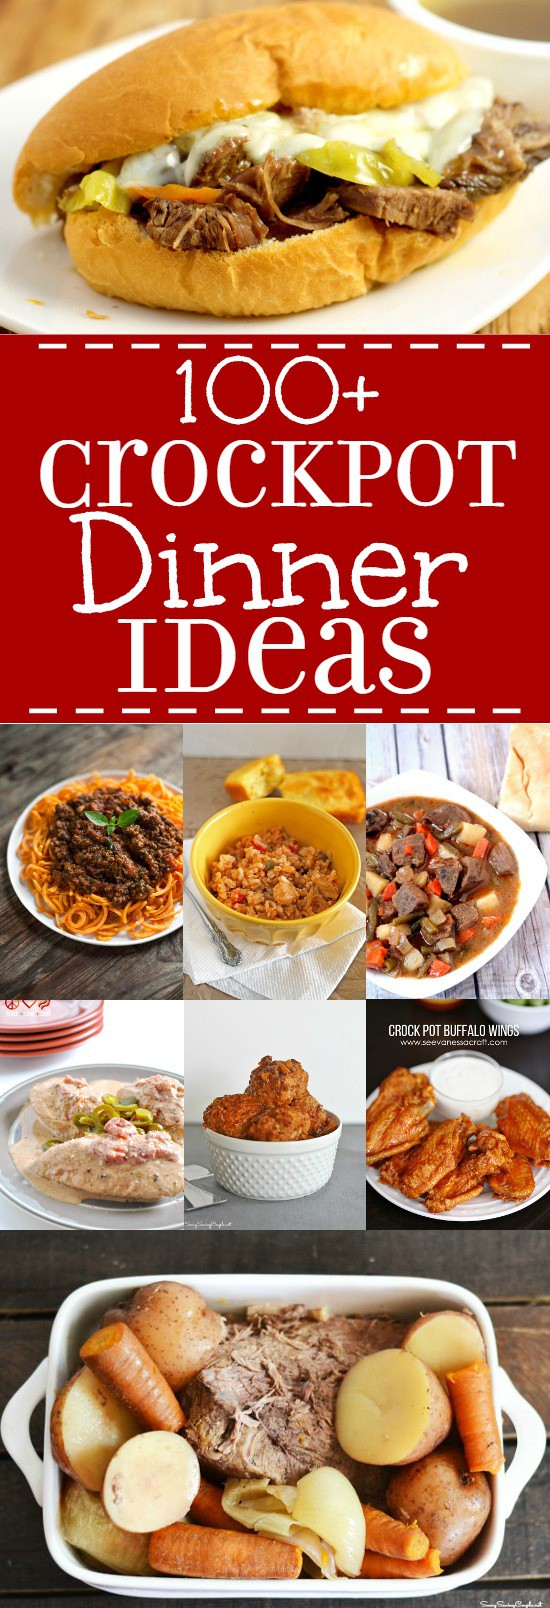 Over 100 easy and delicious Crock Pot Dinner Ideas with slow cooker recipes that are perfect for busy nights and the whole family!